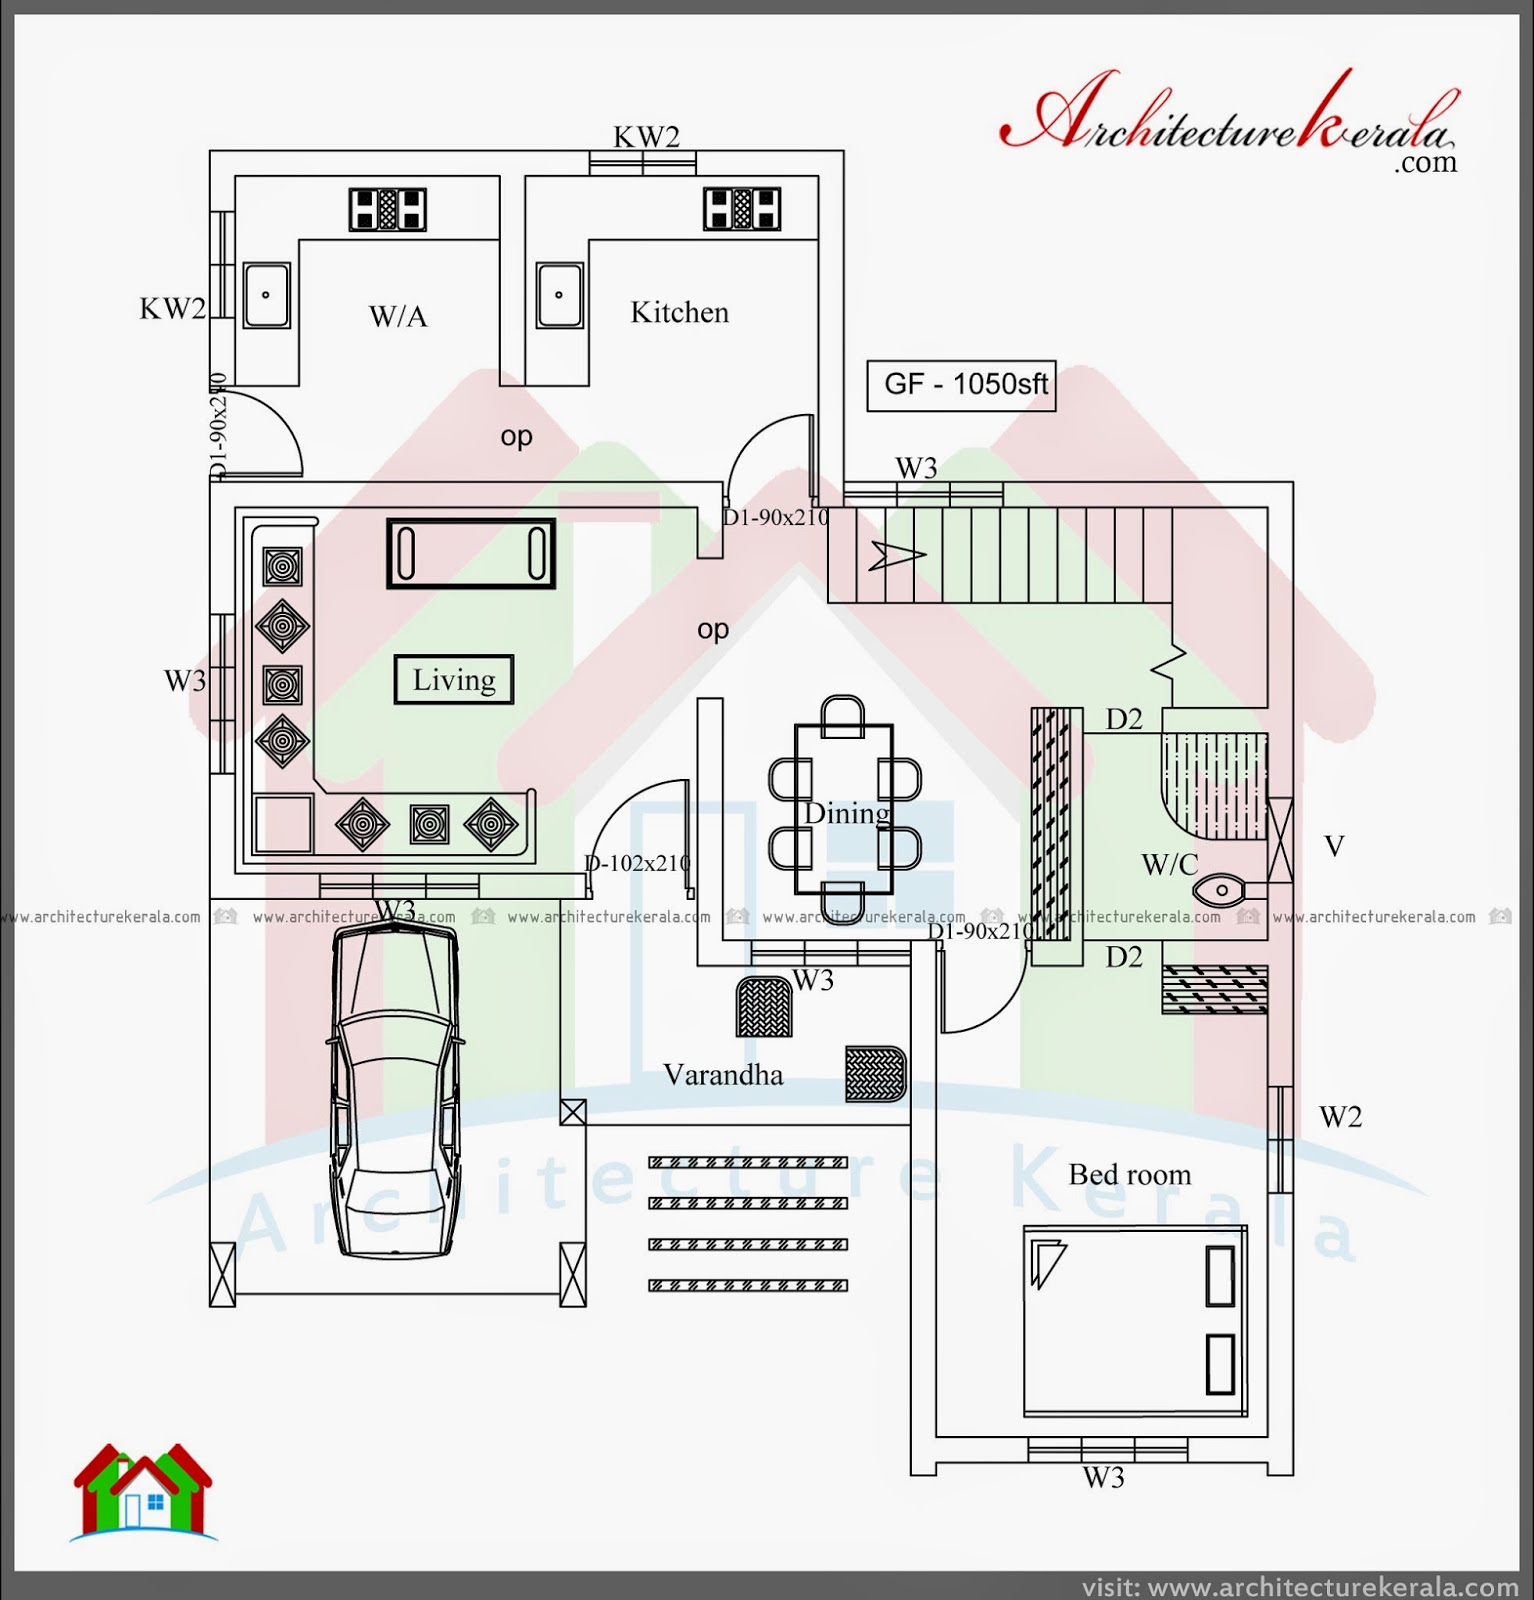 Three bedroom two storey house plan architecture kerala for 6 bedroom double storey house plans